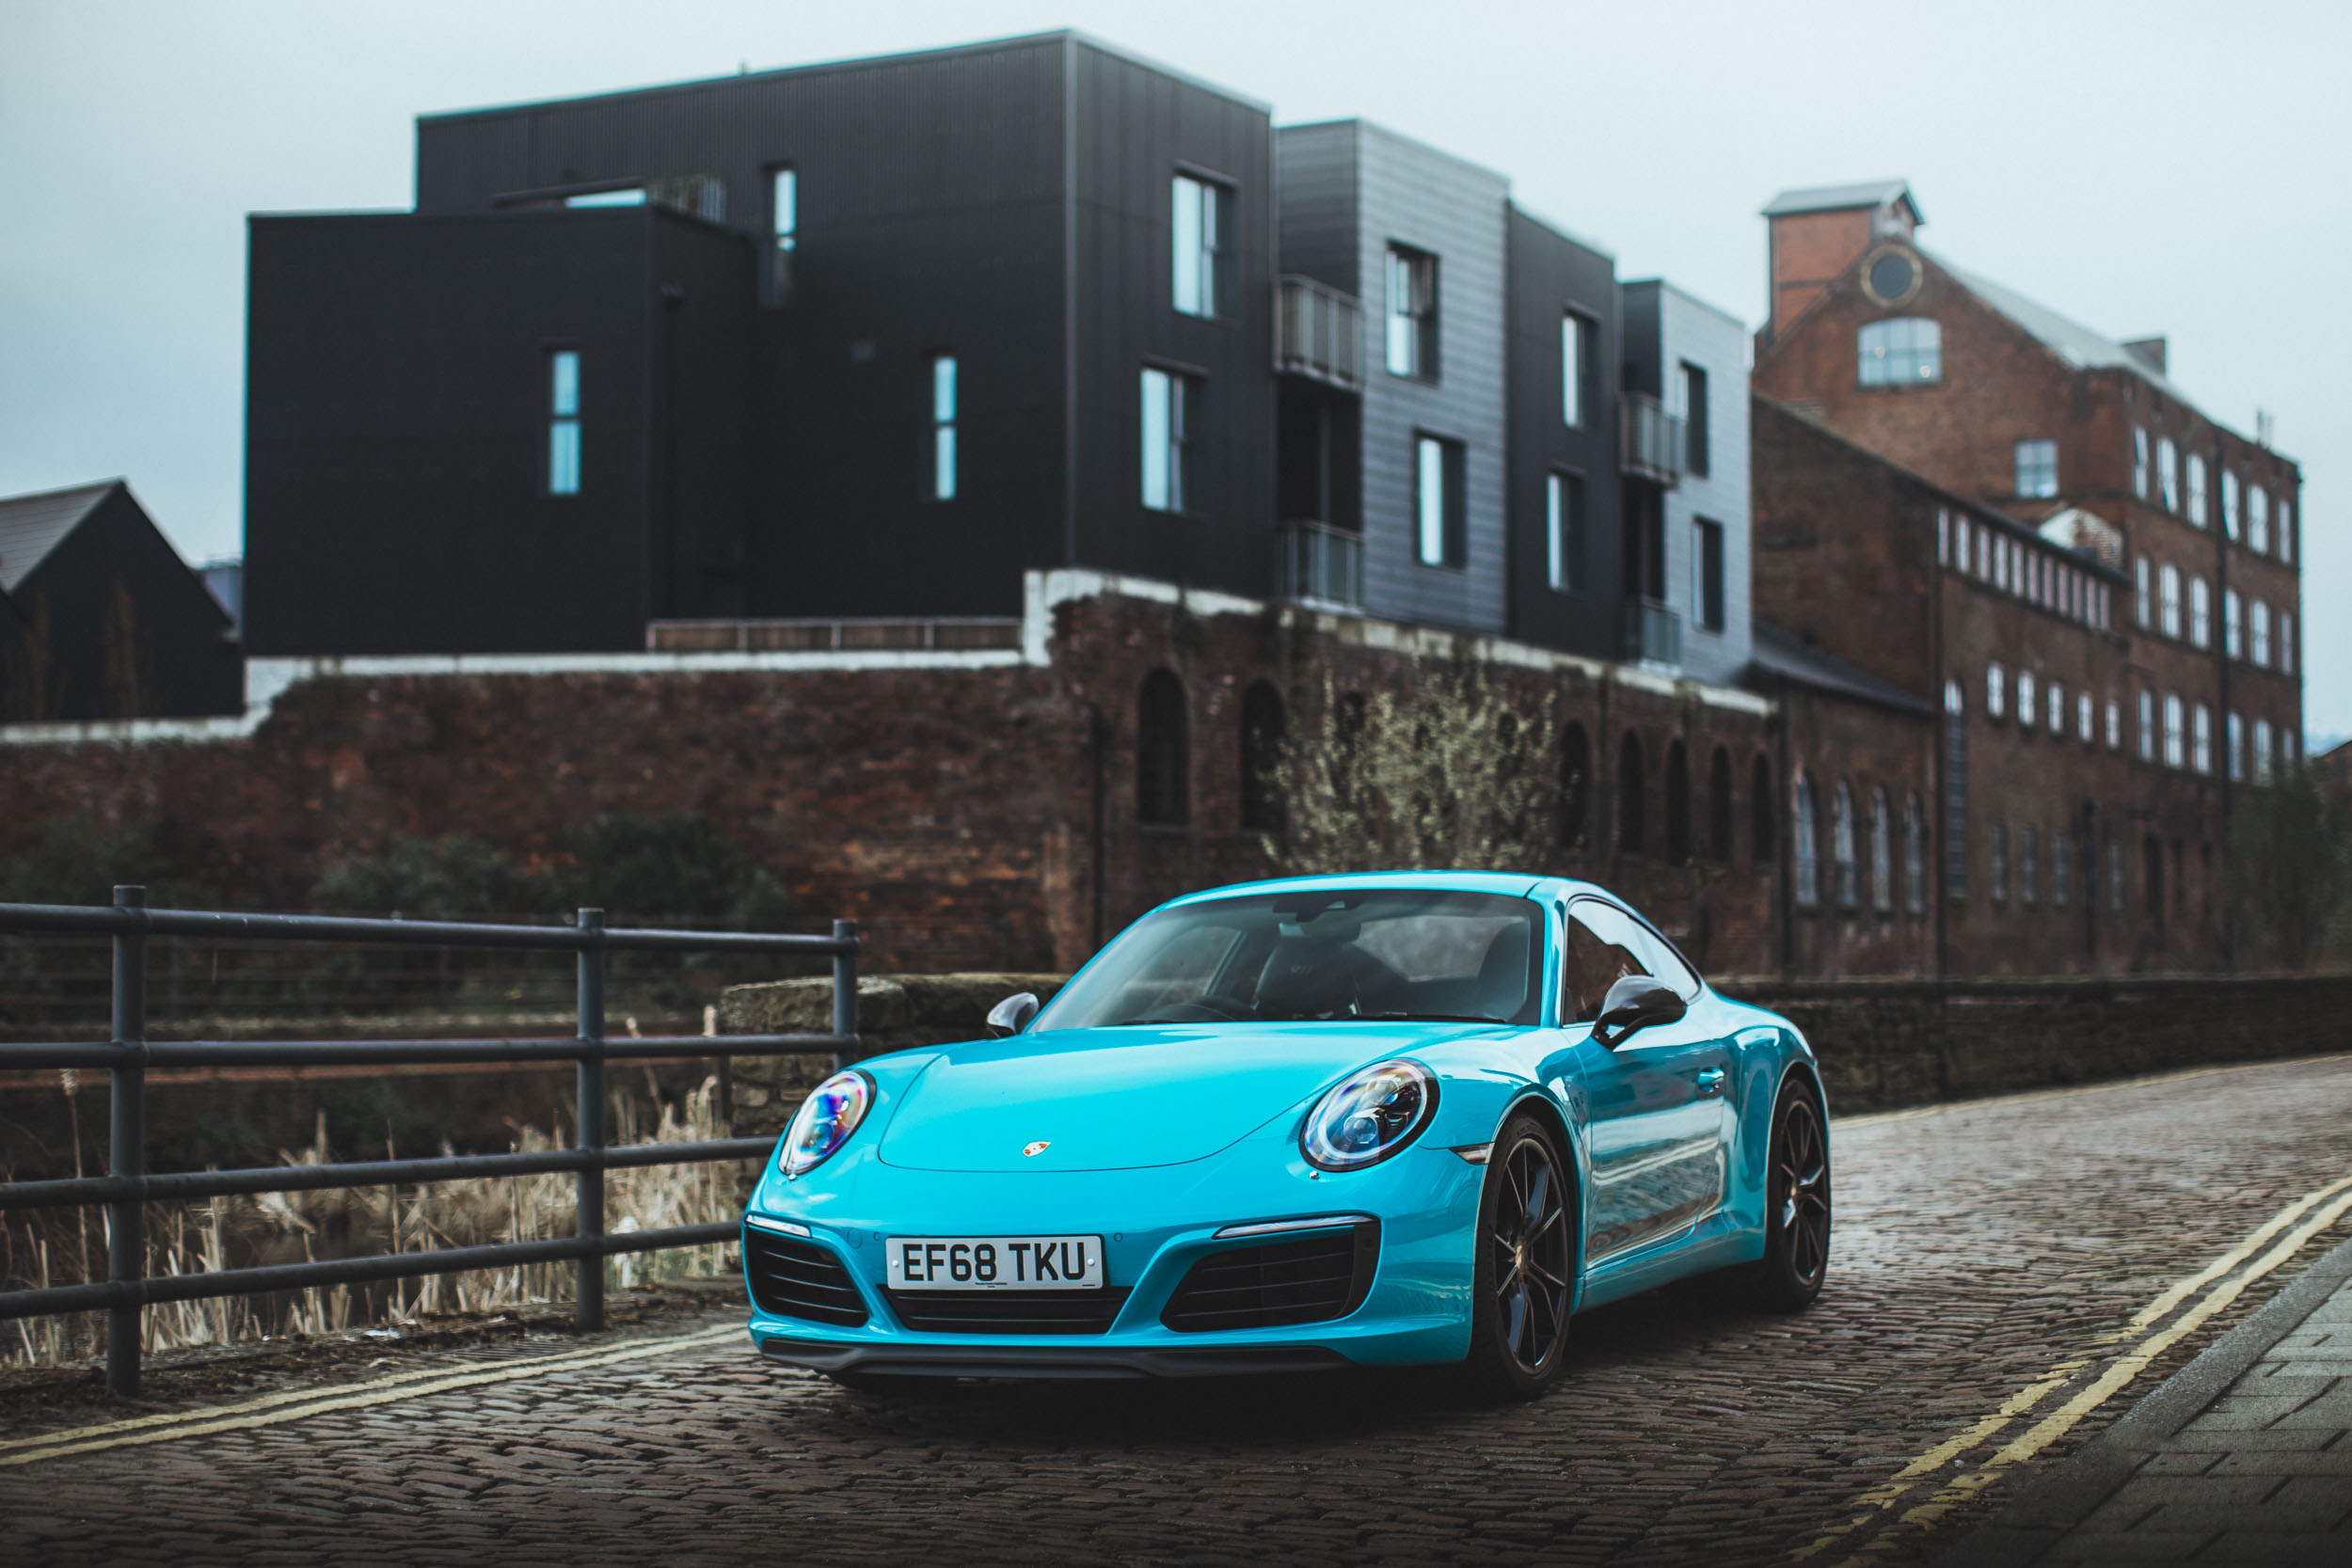 Porsche_911TBlue_April19_ByTomKahler_Lowres (4 of 20).jpg